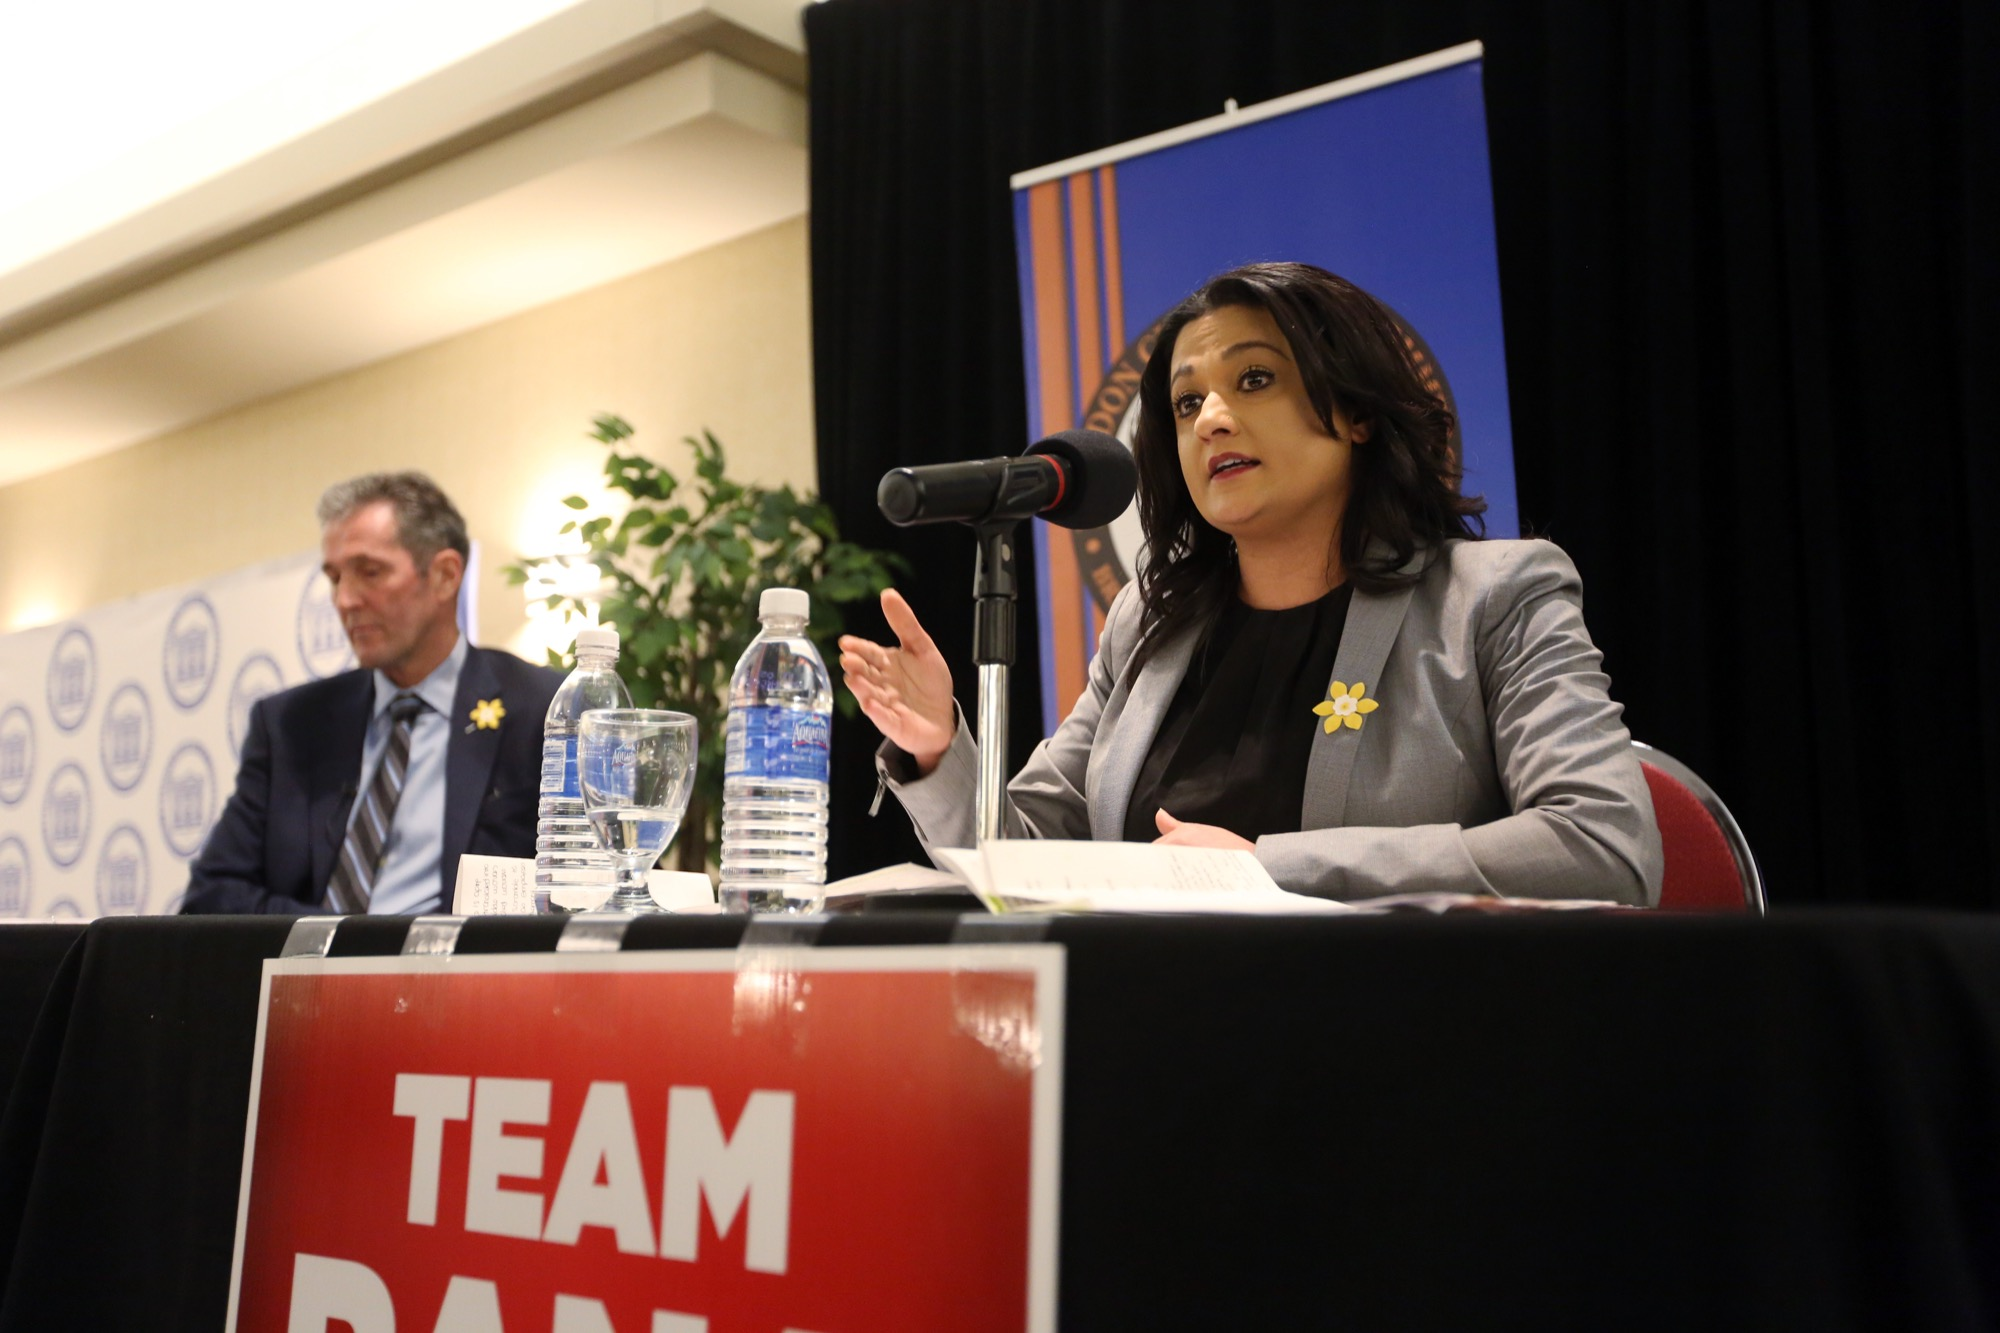 Manitoba Liberal Leader Rana Bokhari speaks at a Brandon Chamber of Commerce debate during the provincial election campaign in April. Bokhari has stepped down as Liberal leader.